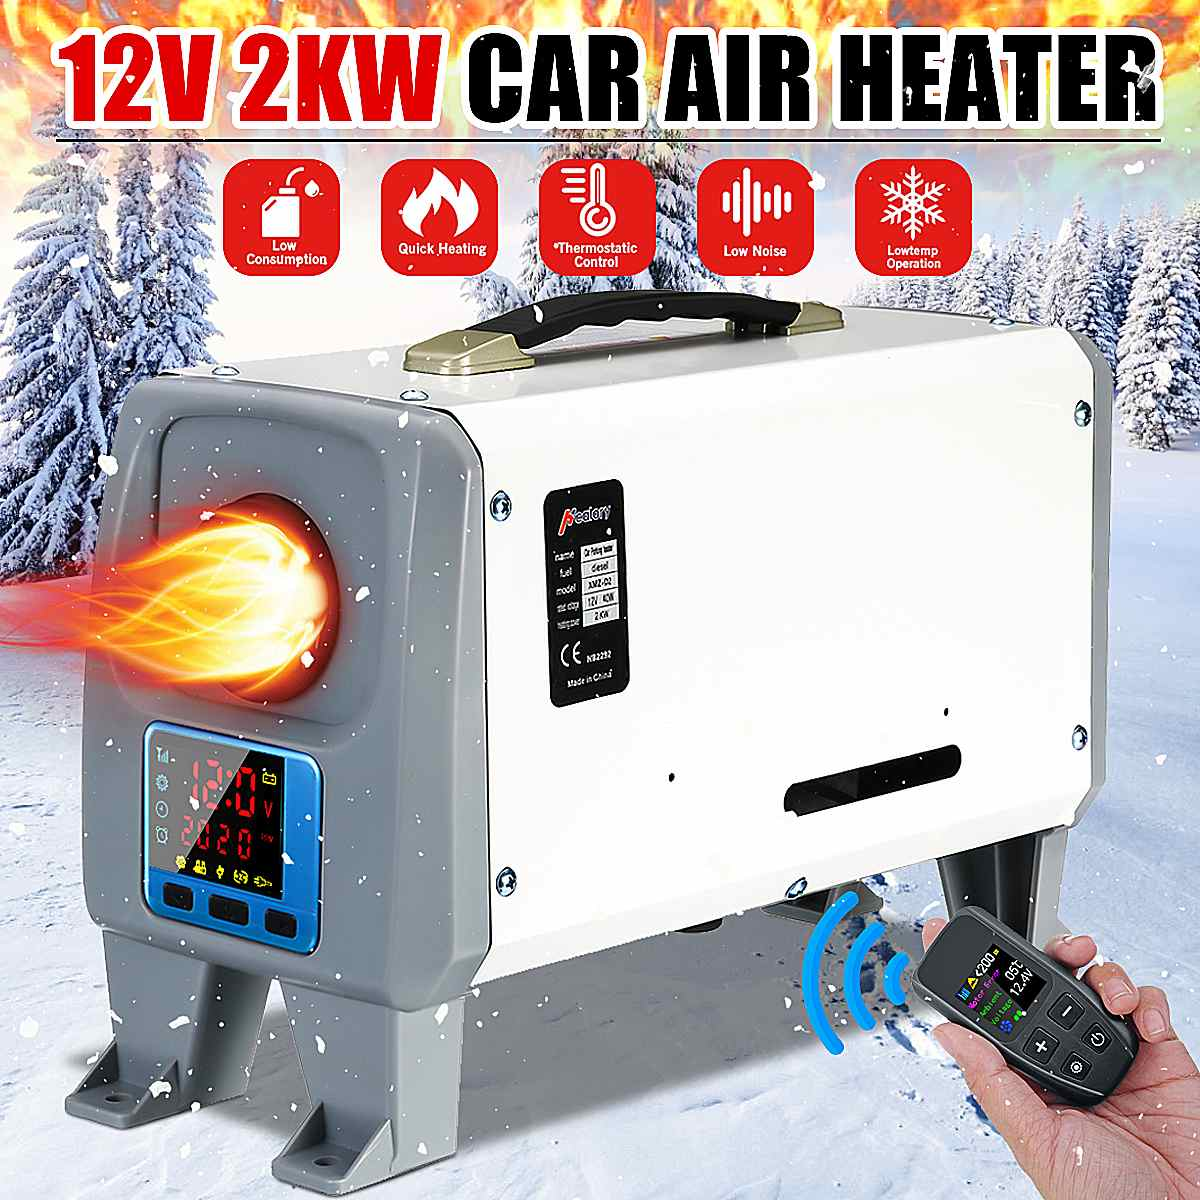 12VV 2KW Adjustable Car Diesel Air Heater Fan New Black LCD Switch+ Remote Control Integrated Machine For Van Boat Bus